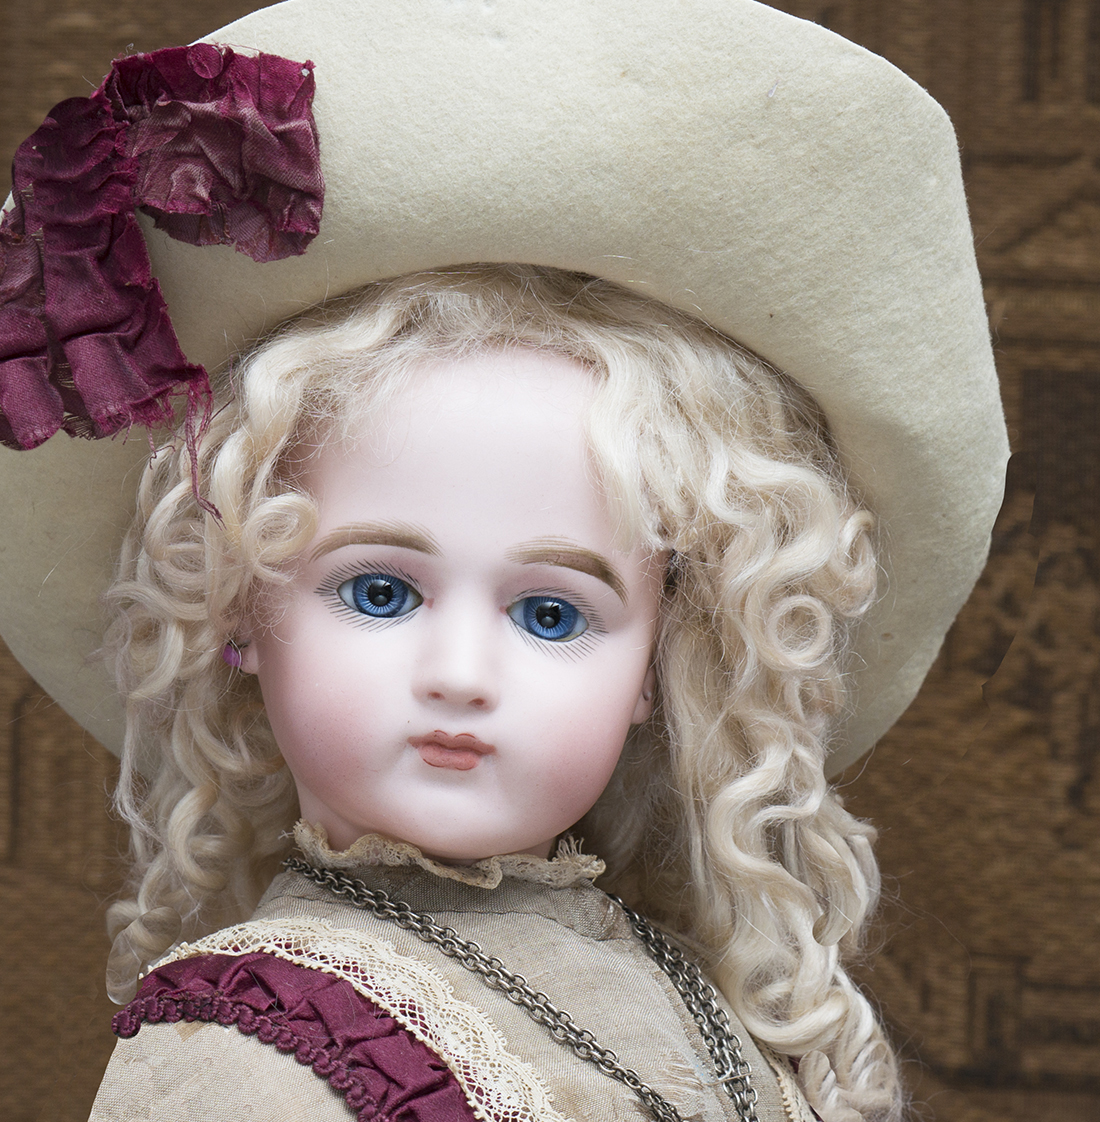 25in Portrait Fashion Jumeau doll